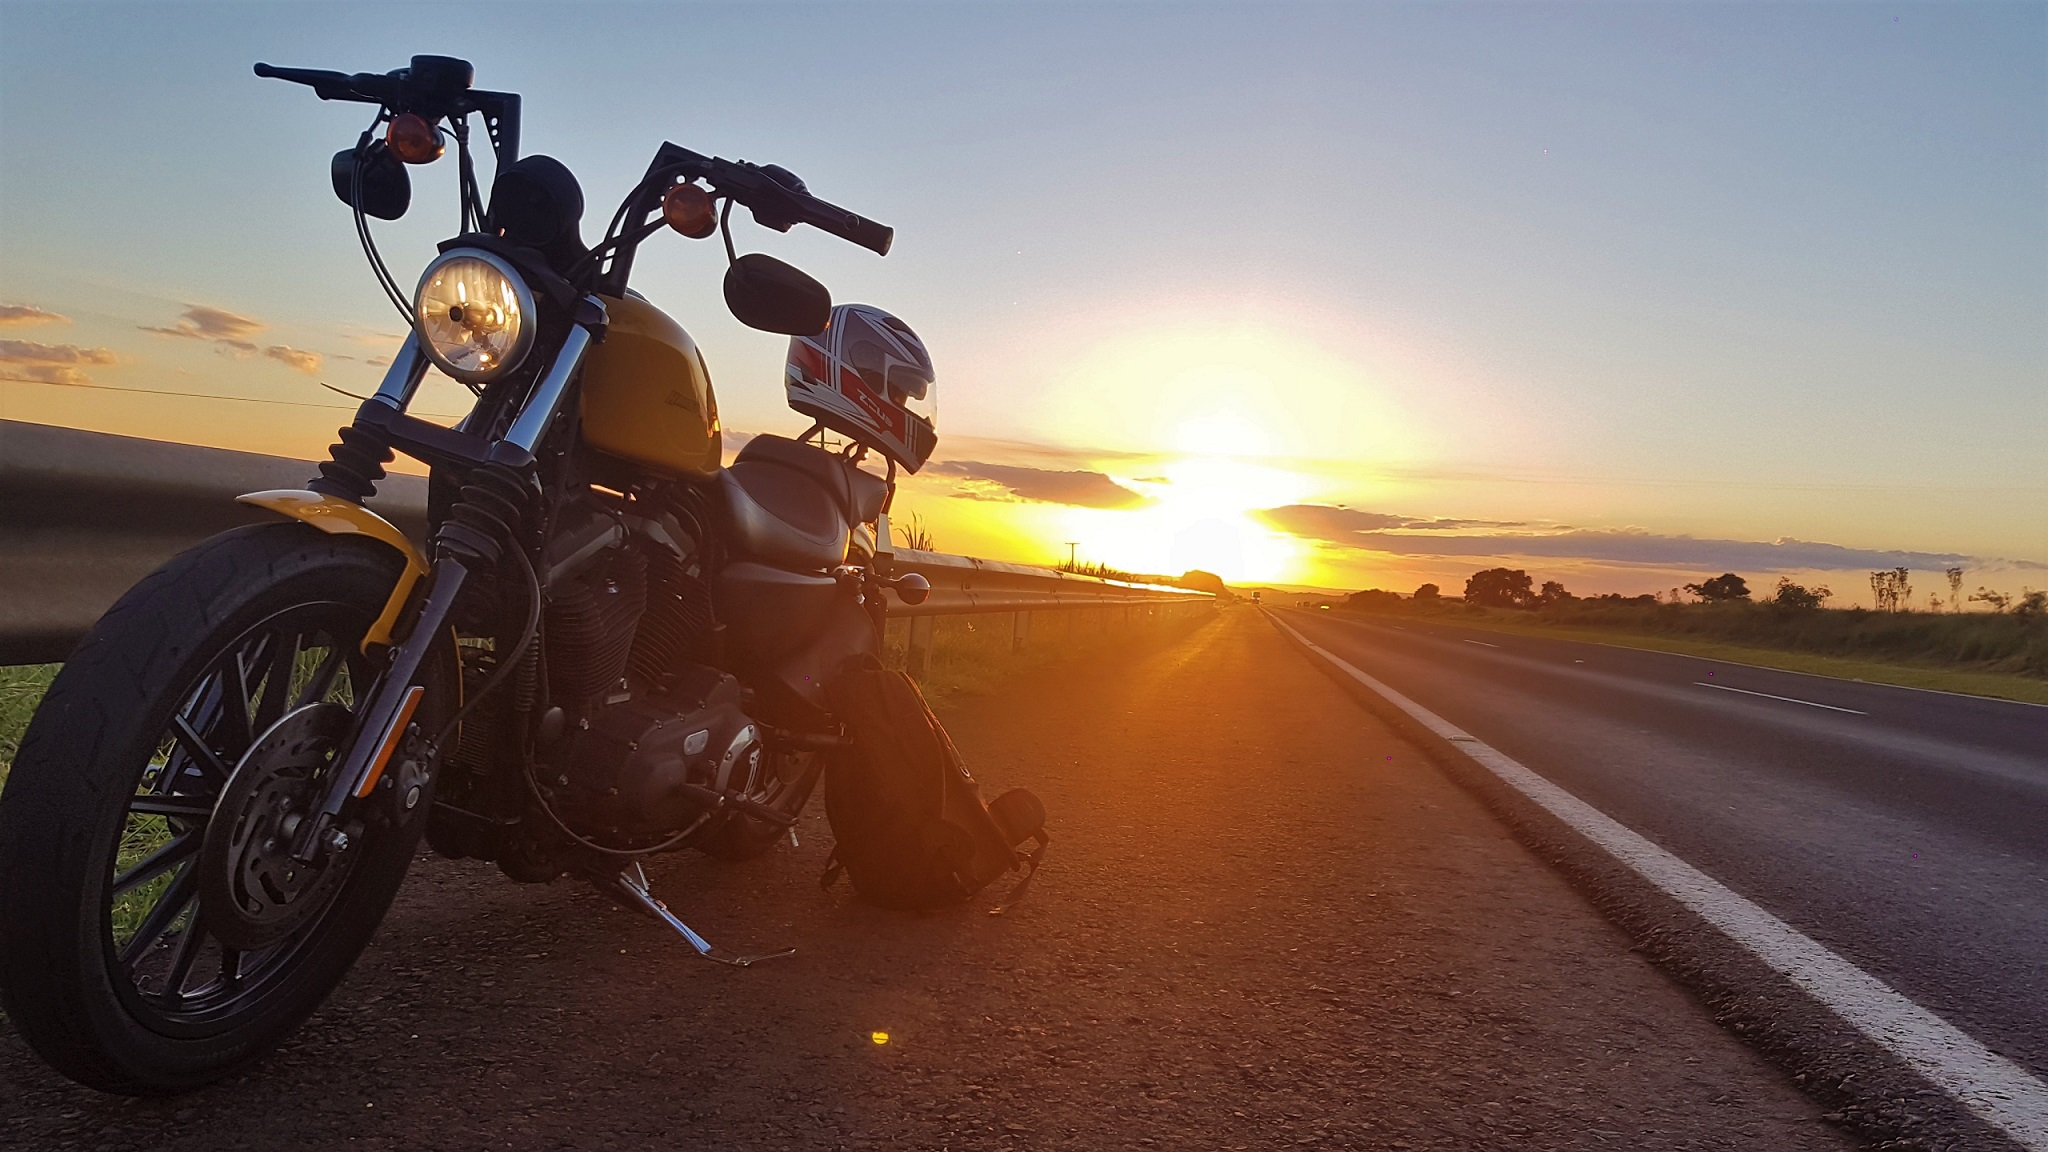 a company background information of harley davidson Harley-davidson's swot analysis highlights the need for change in the company's product mix, innovation, and global market strategies harley-davidson's strengths (internal strategic factors.